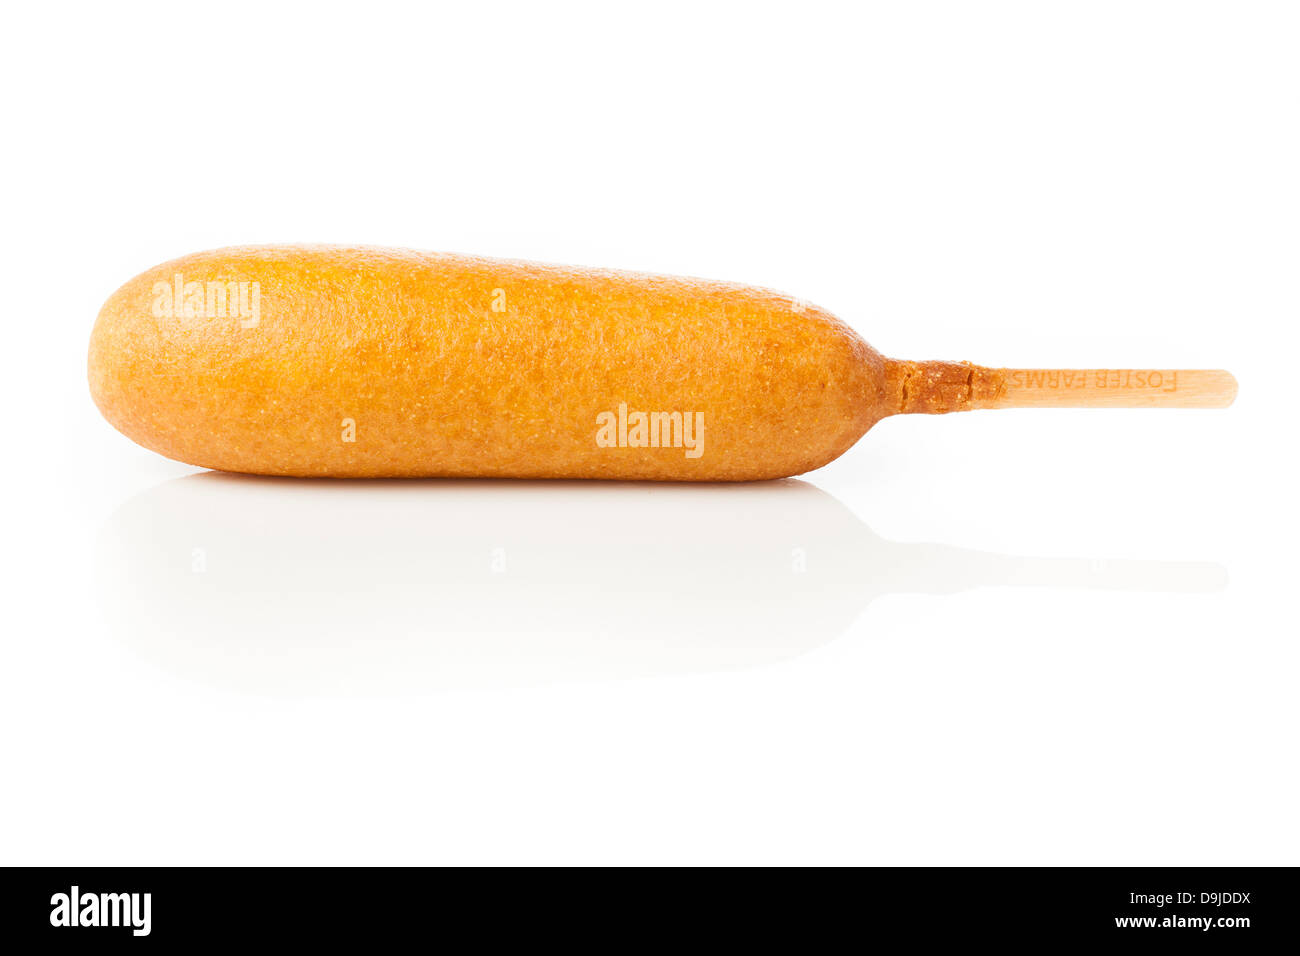 Organic CornDog on a stick with ketchup and mustard - Stock Image